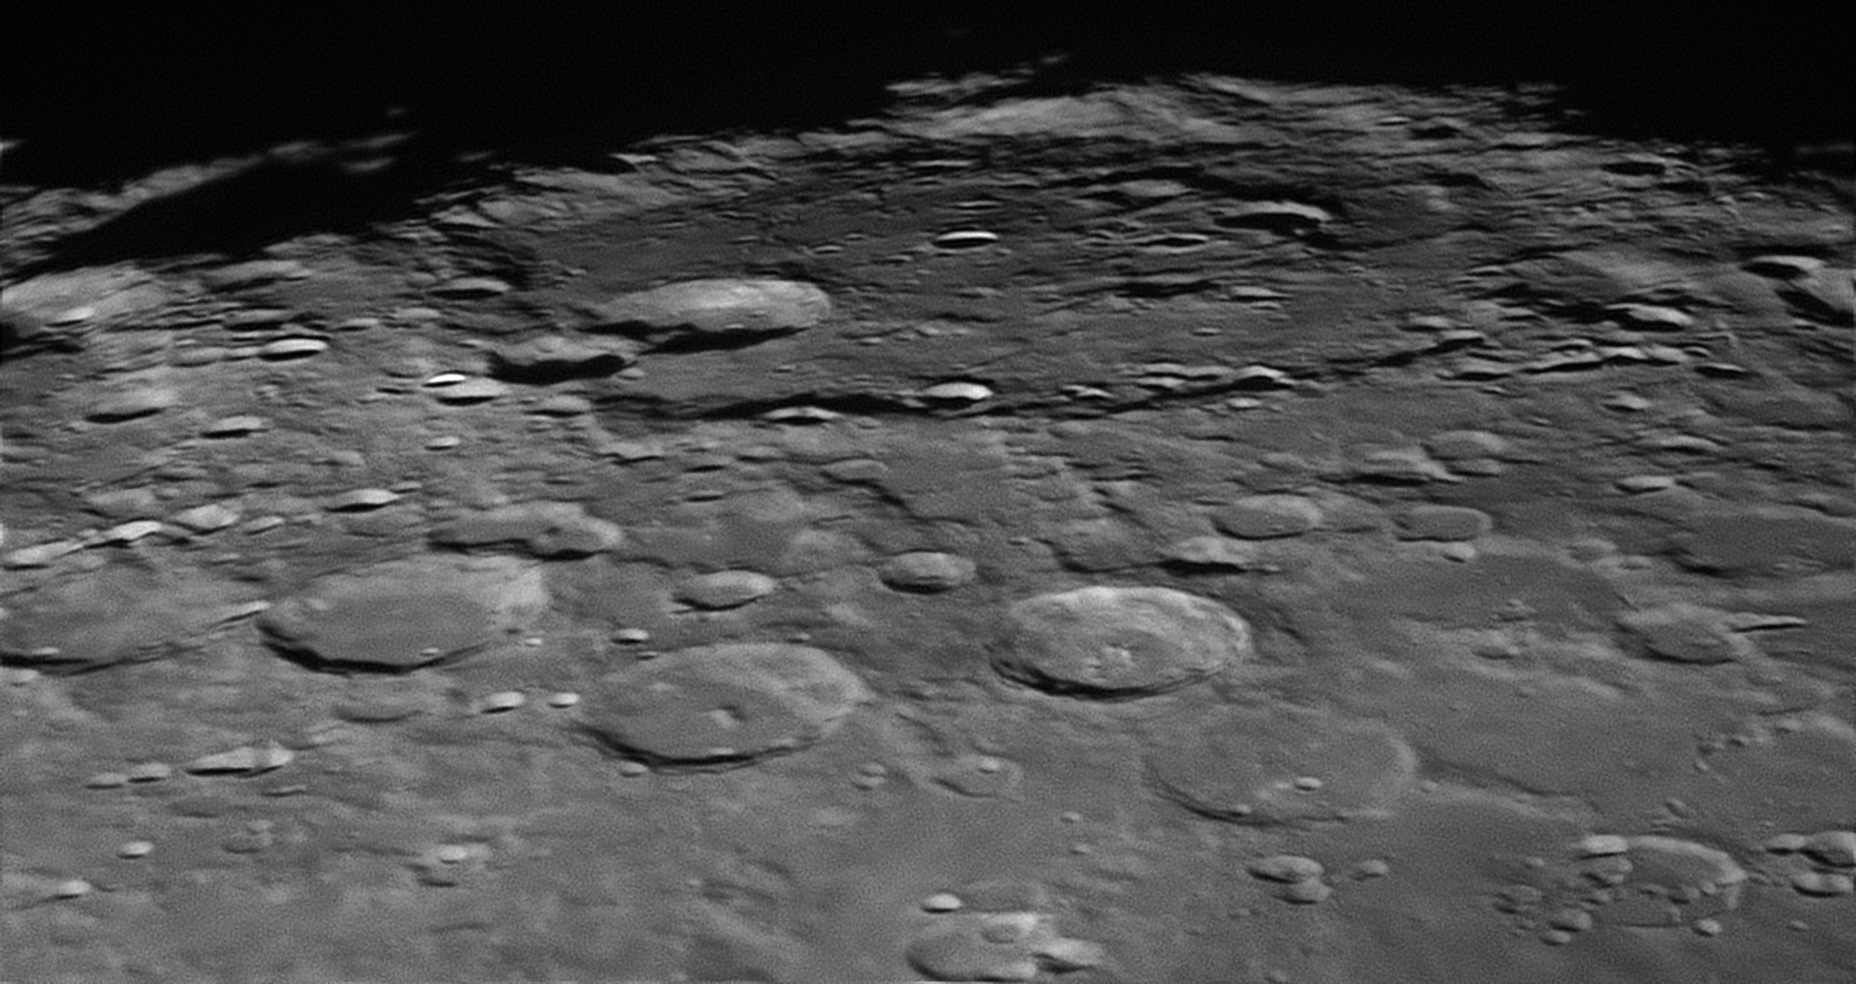 2021-02-25-2107_8-G-Moon_lapl5_ap1243_AS_plaine_bailly.png.ec038fd9681f99e0cdce56685b62359f.png